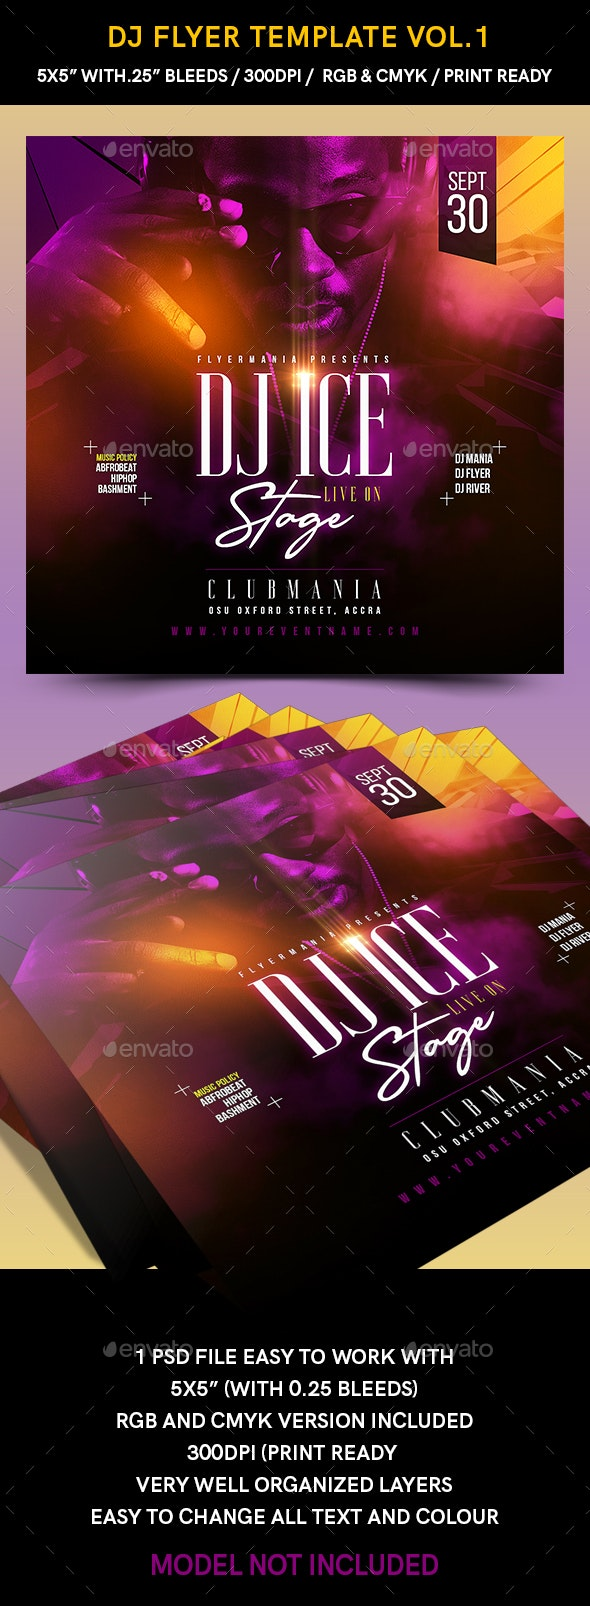 DJ Flyer Template Vol.1 - Flyers Print Templates